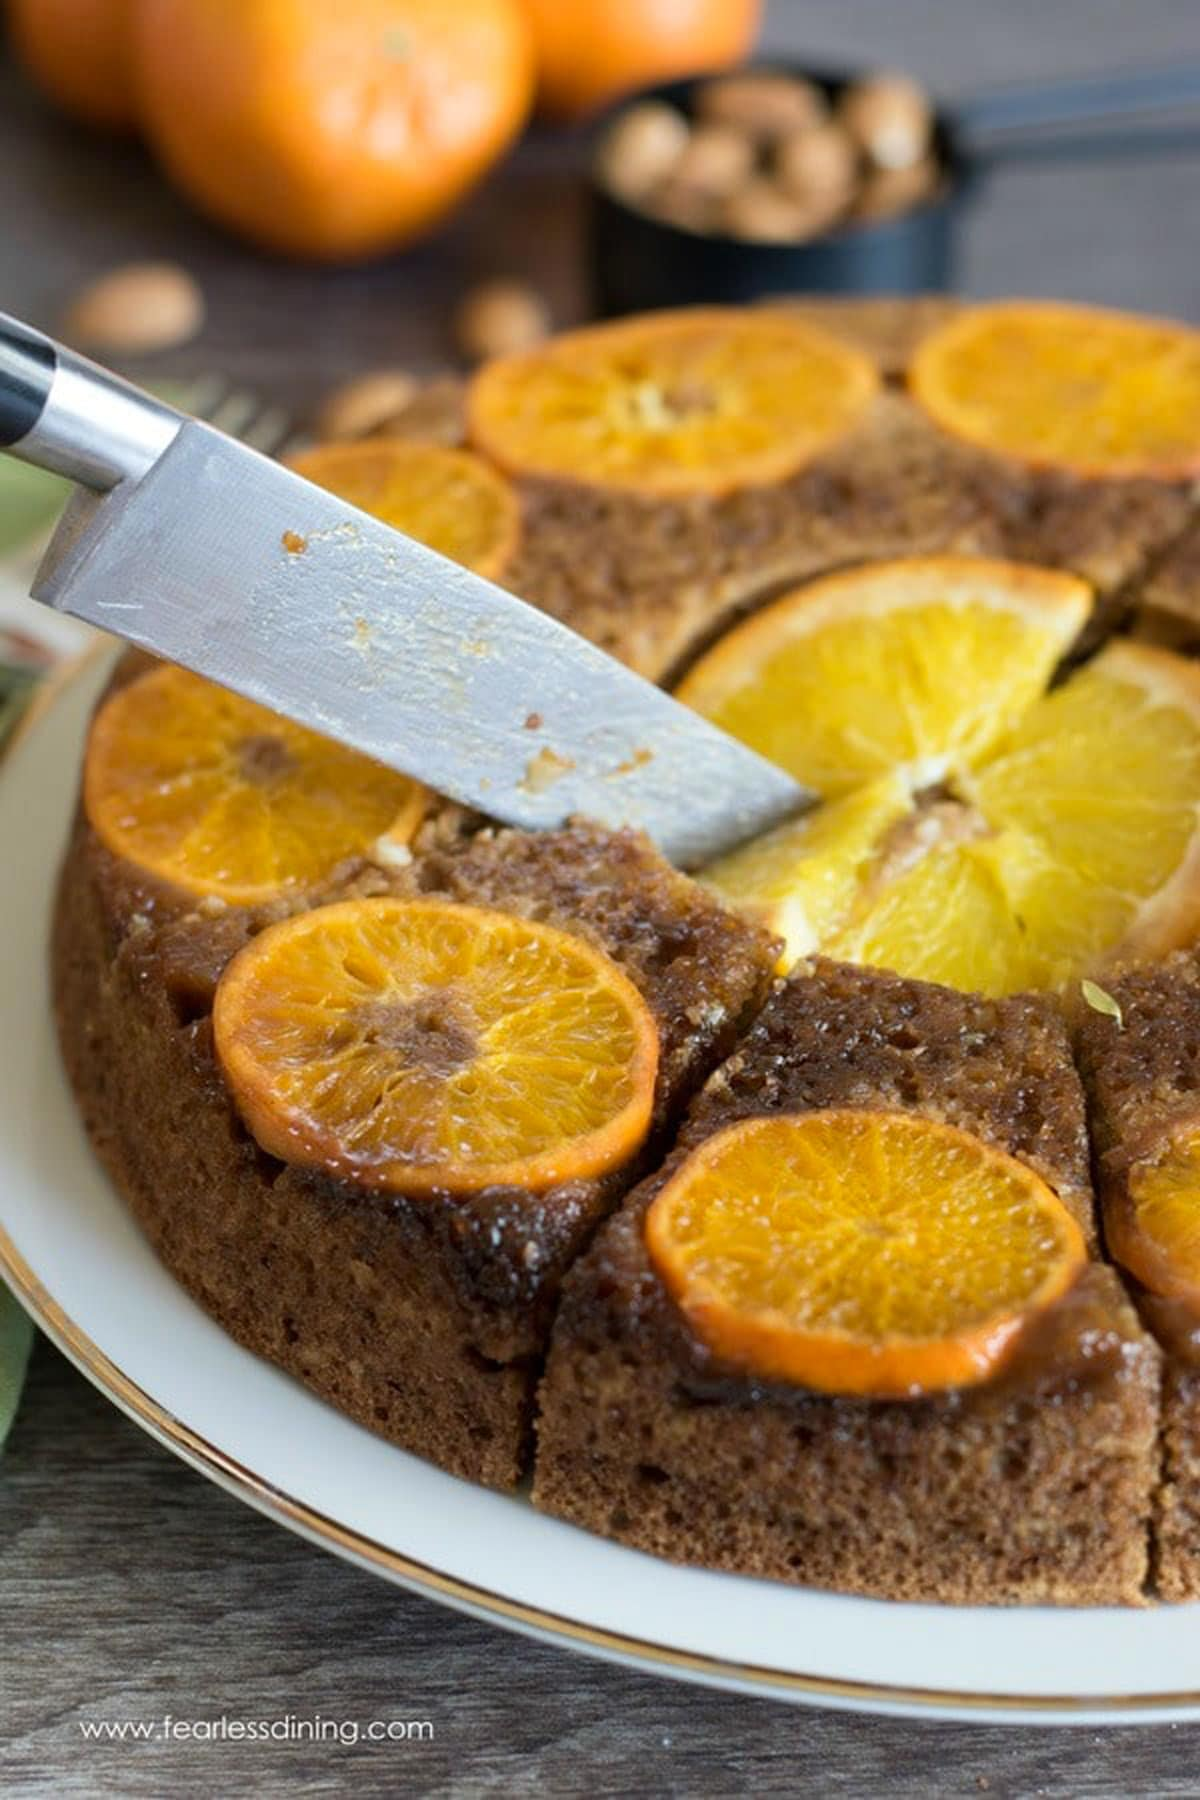 cutting the orange cake with a knife